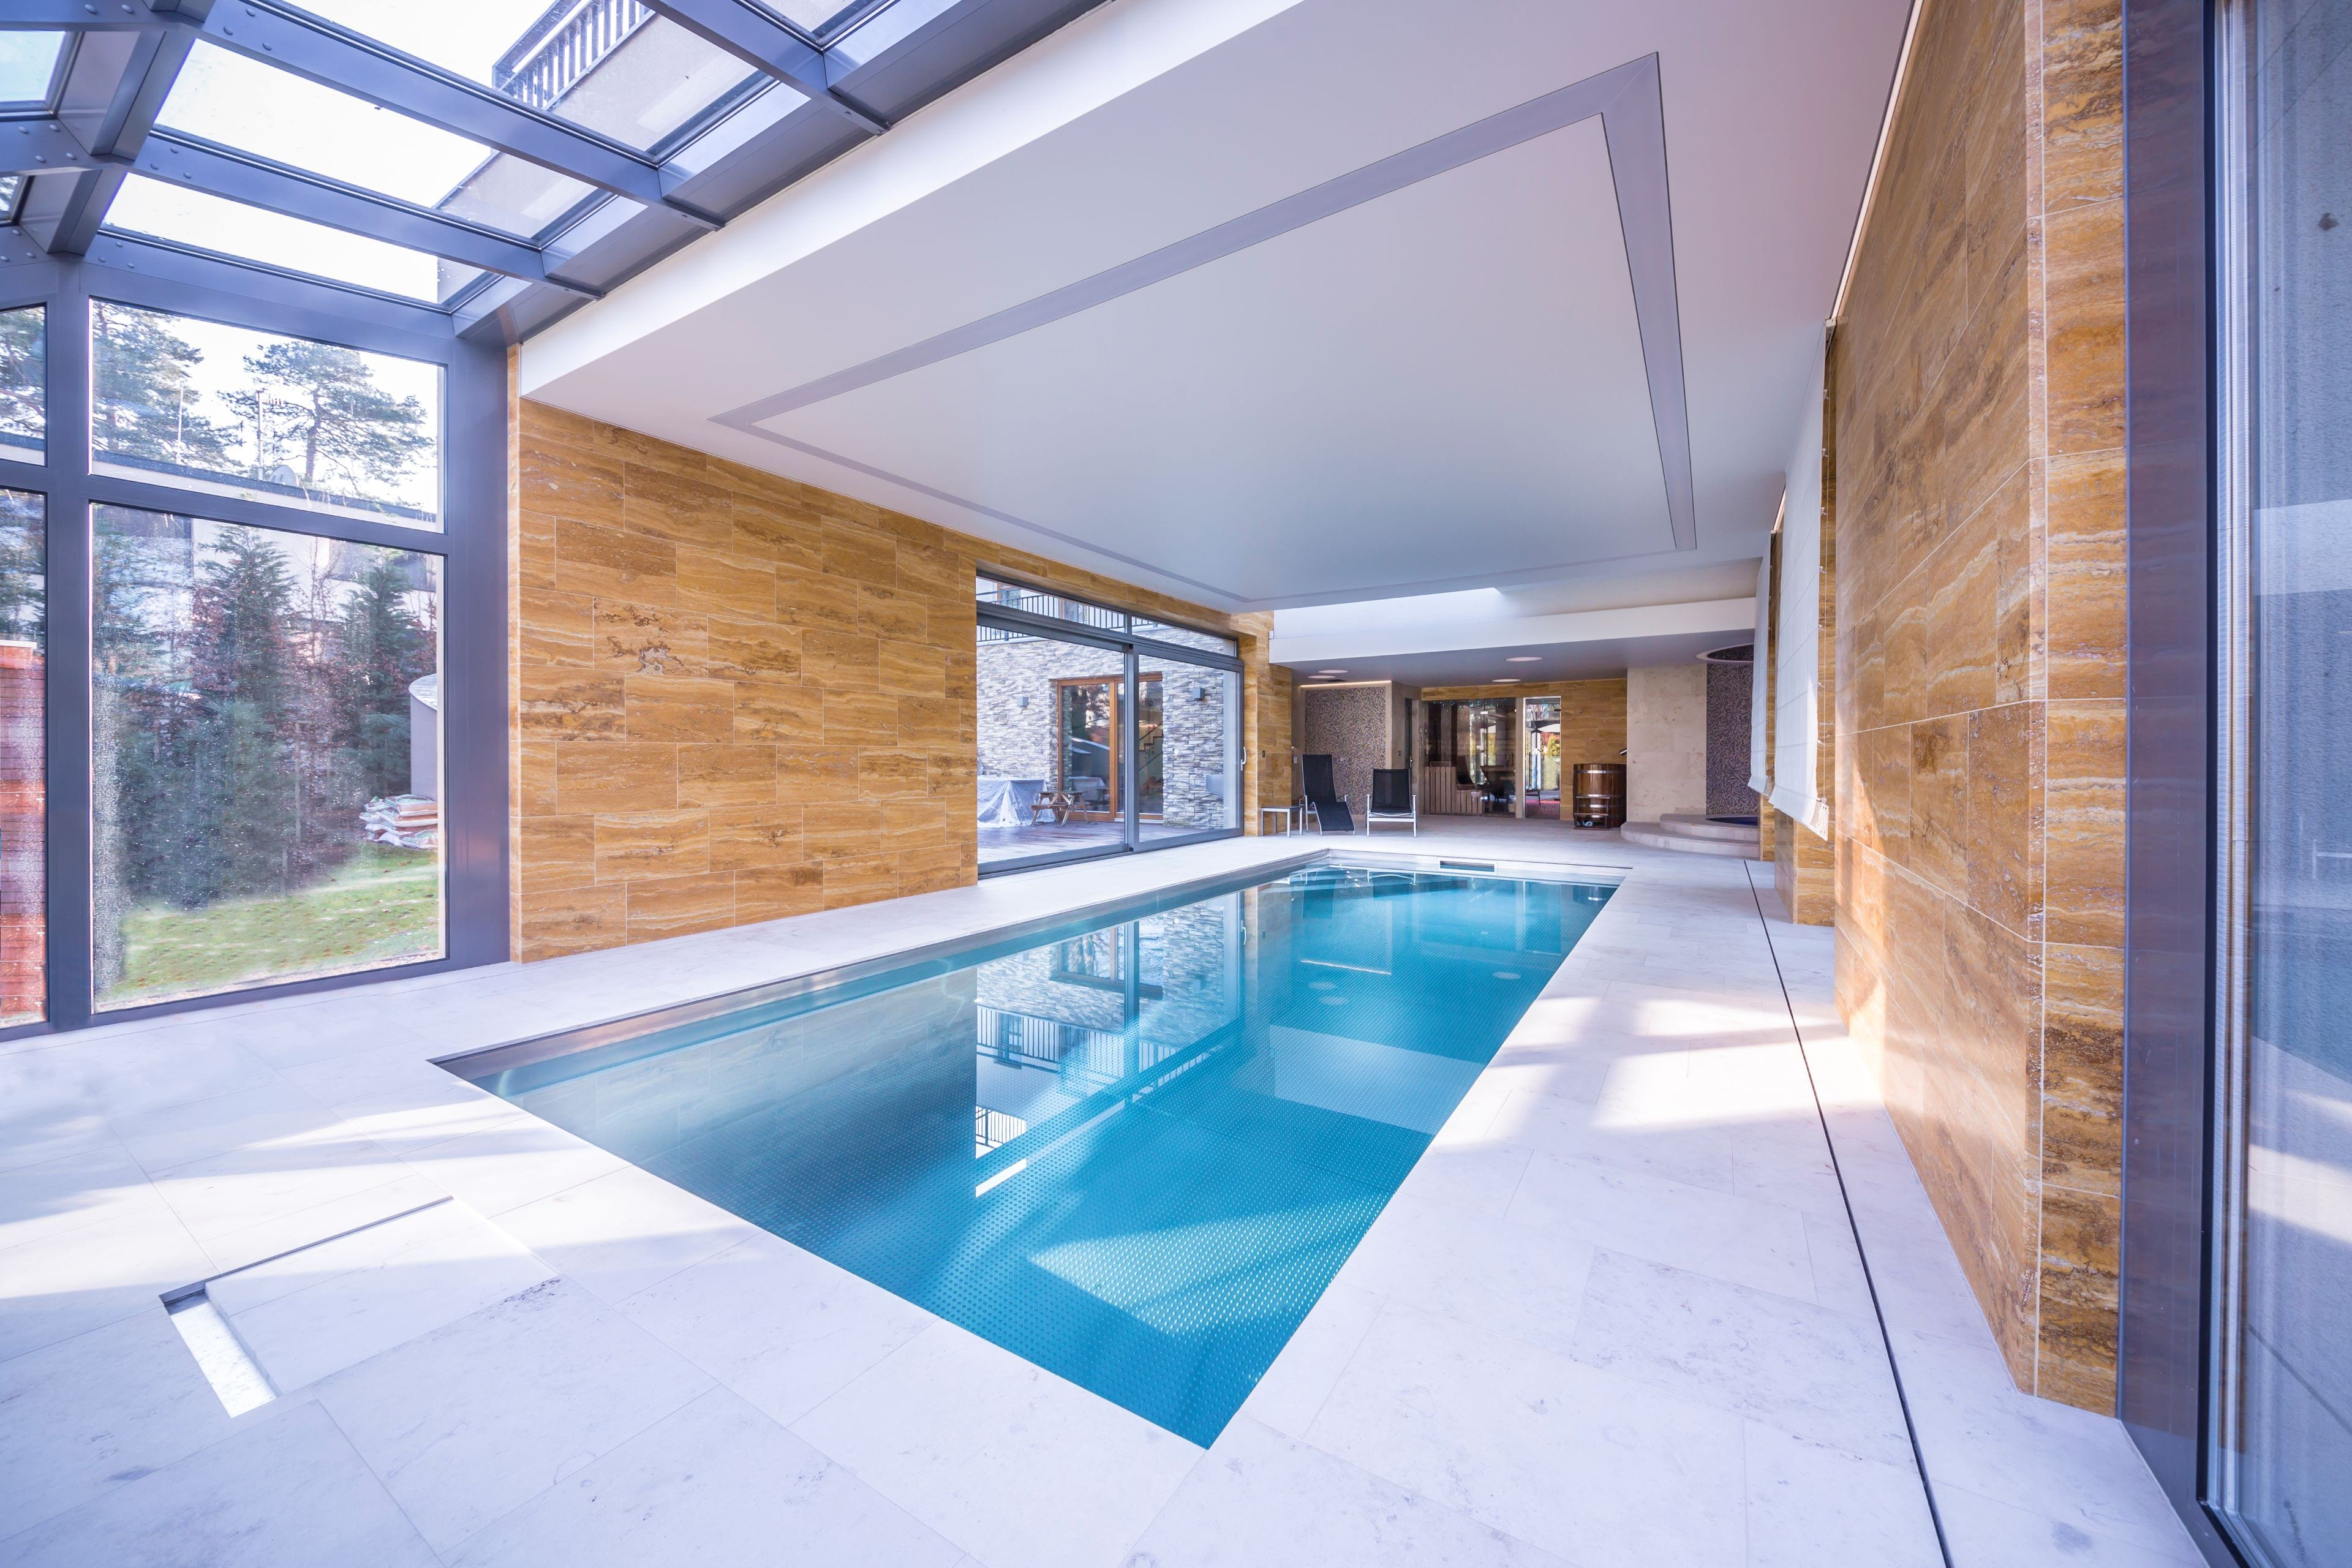 Private Stainless-Steel Wellness Area